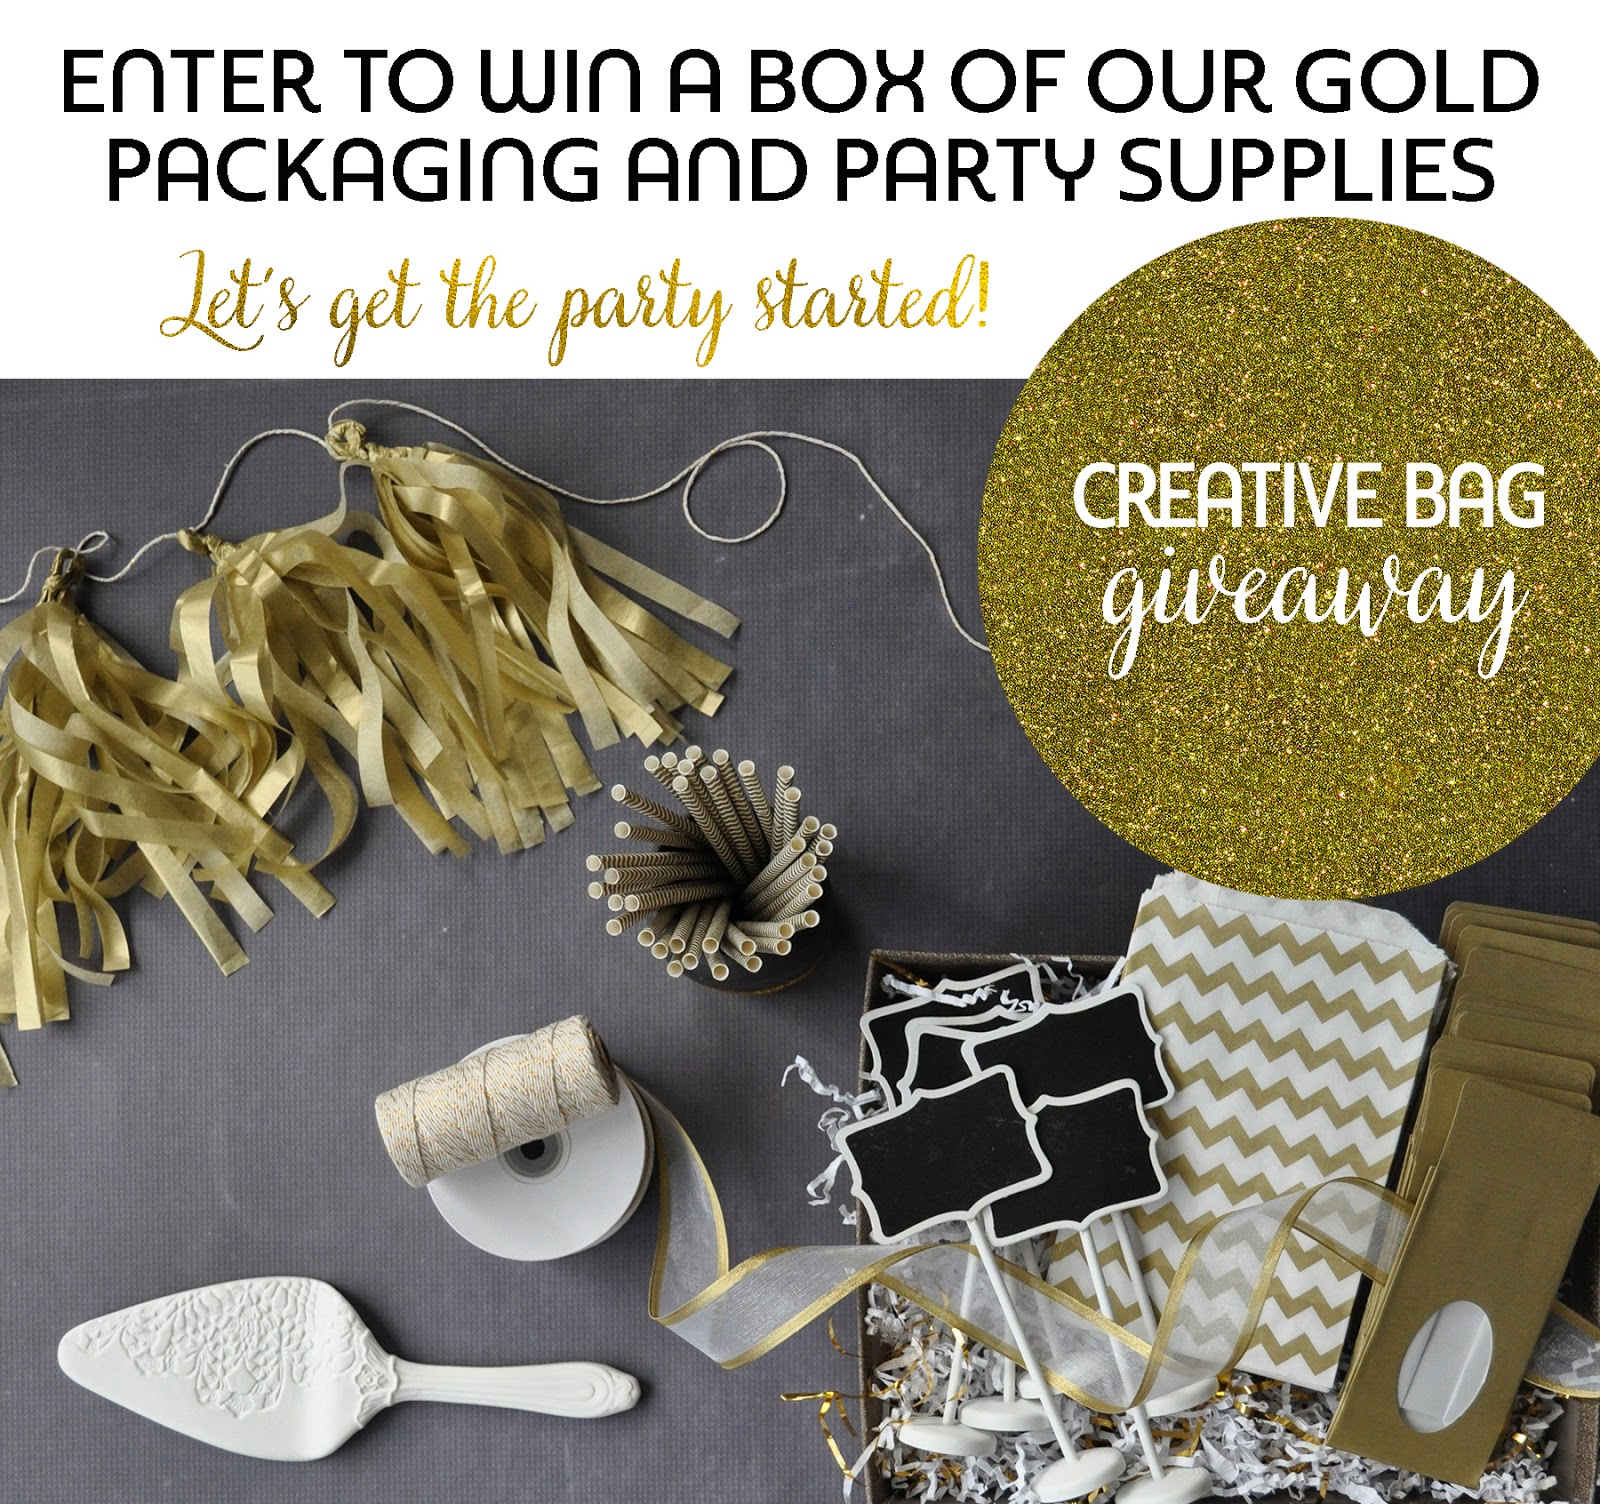 Enter to win a box of gold packaging and party supplies | Creative Bag